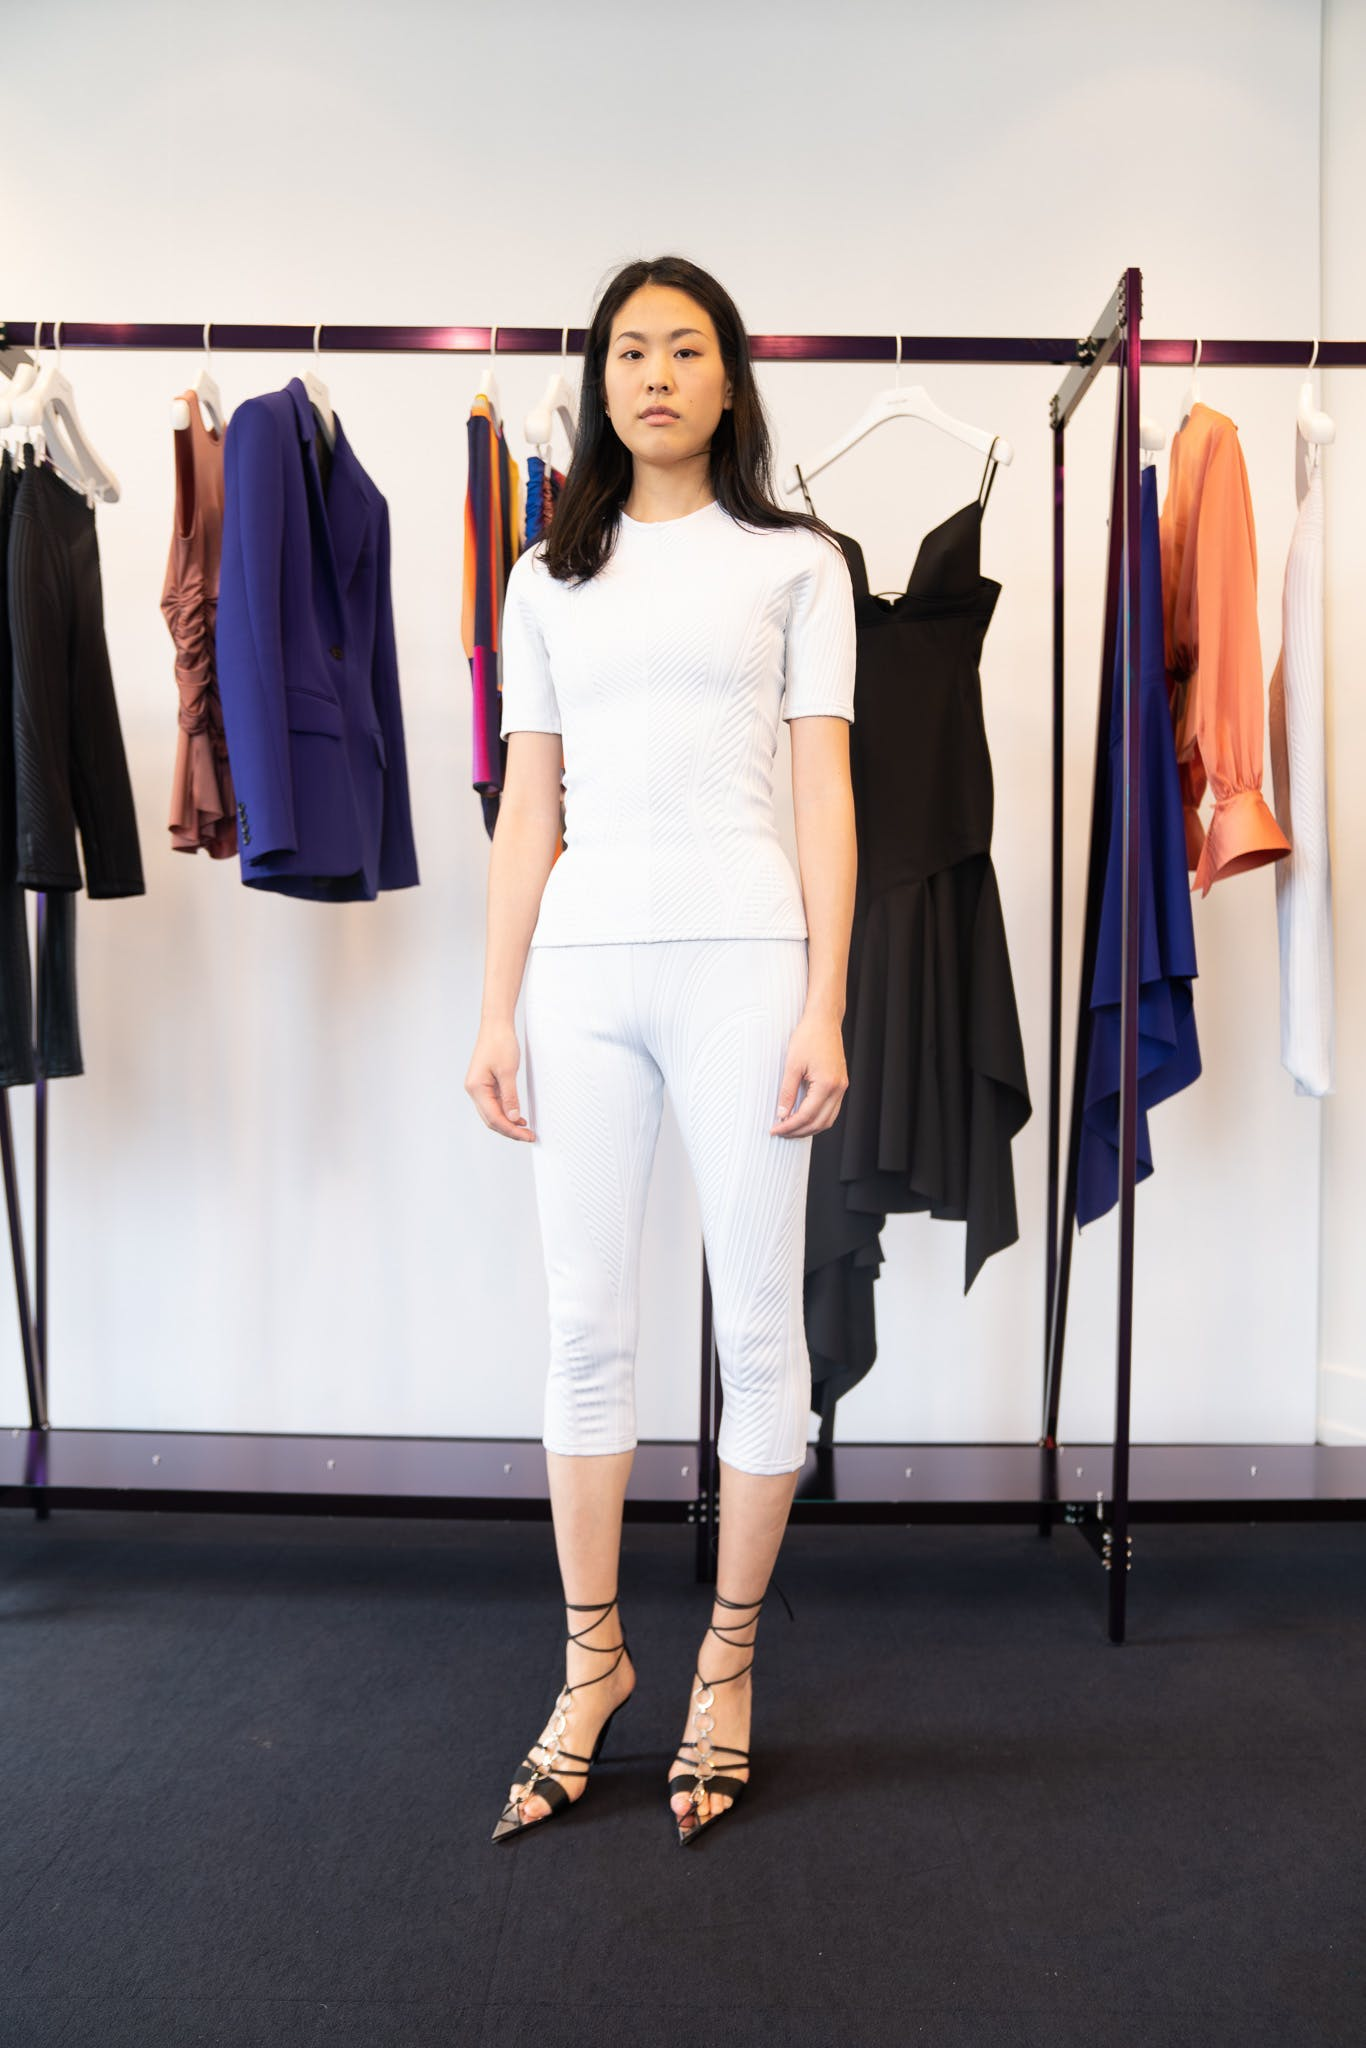 Mugler Showroom Short Sleeve Scuba Shirt in White Three Quarter Length Scuba Leggings in White Tie Up Heels in Black Spring 20 RTW